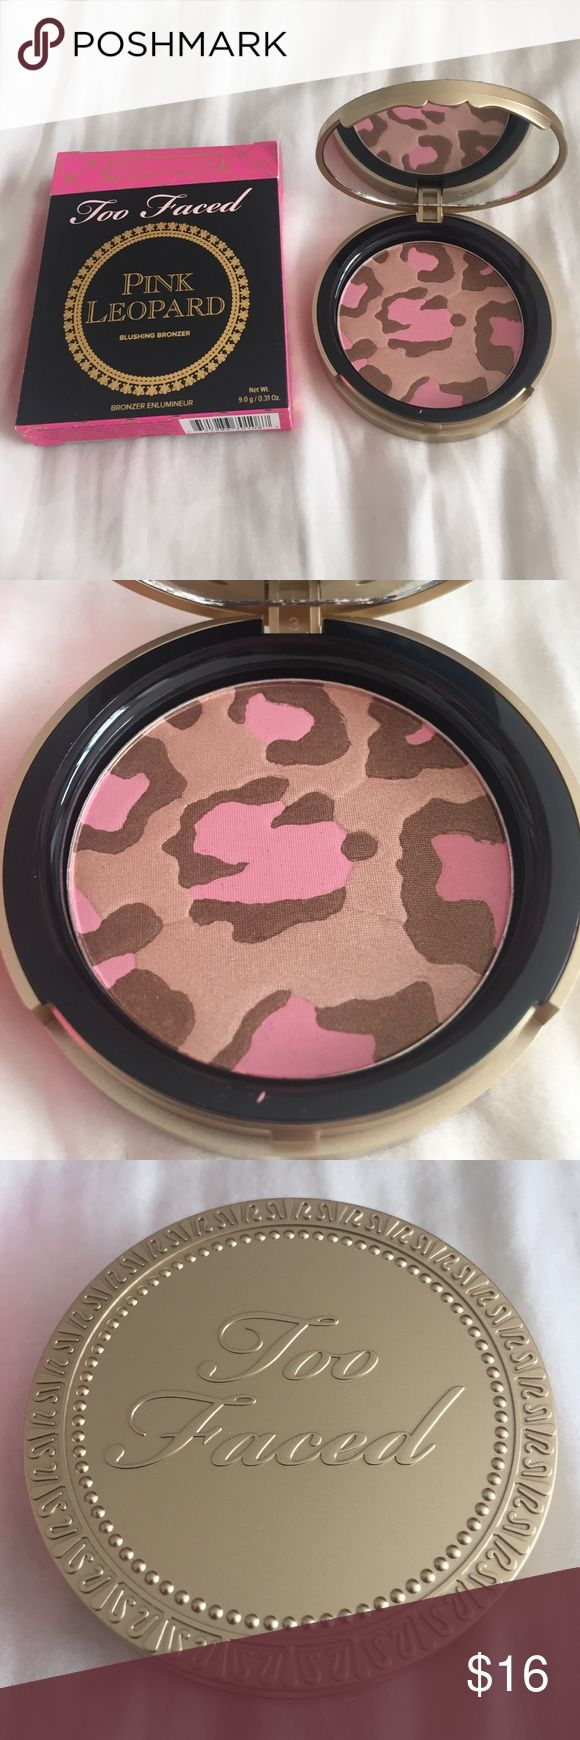 """Too Faced blushing bronzer Too Faced blushing bronzer. Never been used, still in packaging. In the shade """"pink leopard."""" Too Faced Makeup Bronzer"""